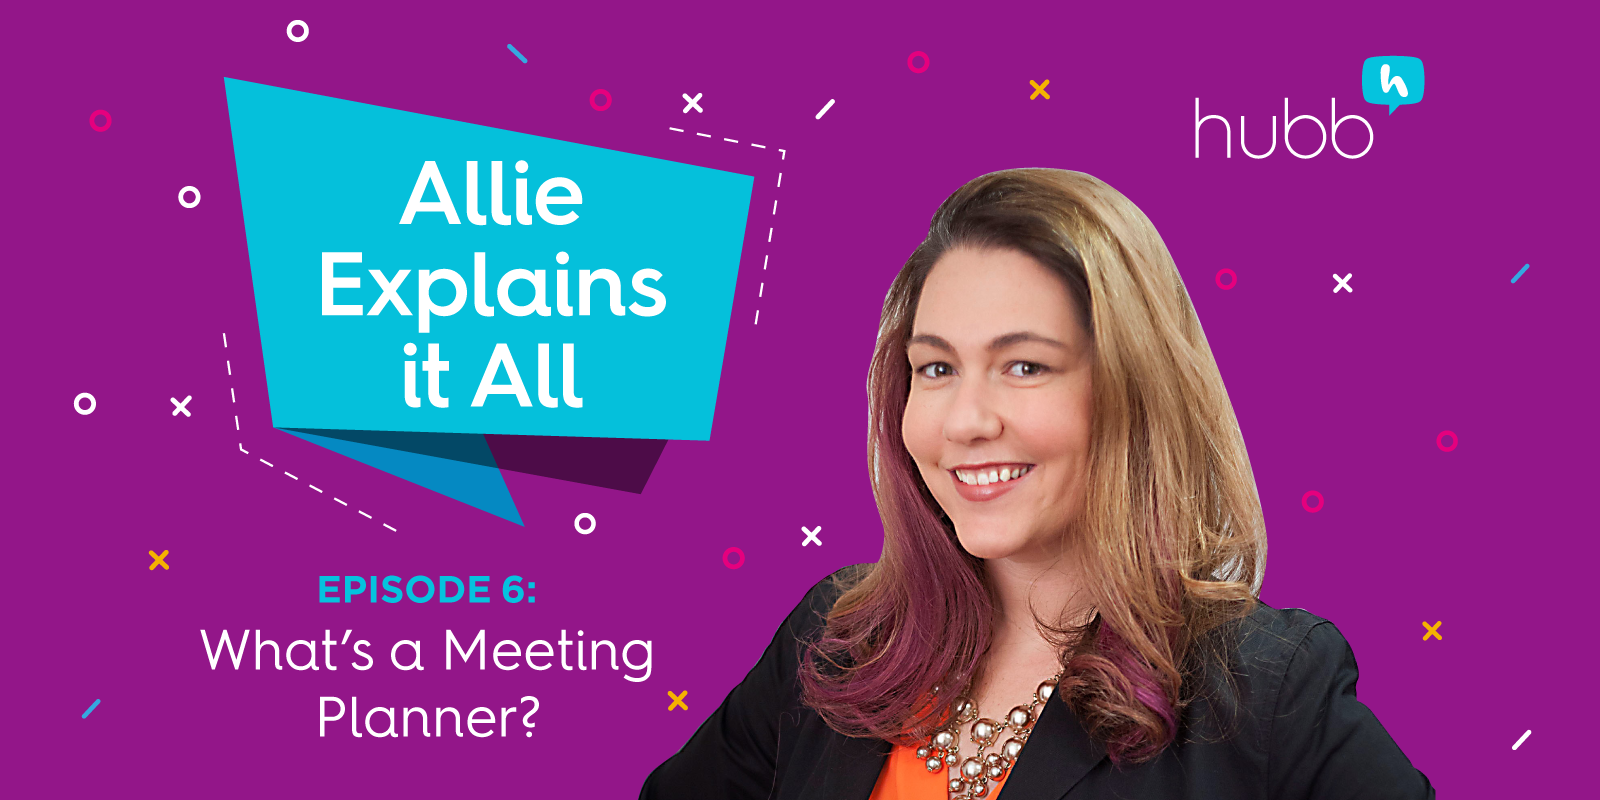 Allie Explains It All, Episode 6: What is a meeting planner?